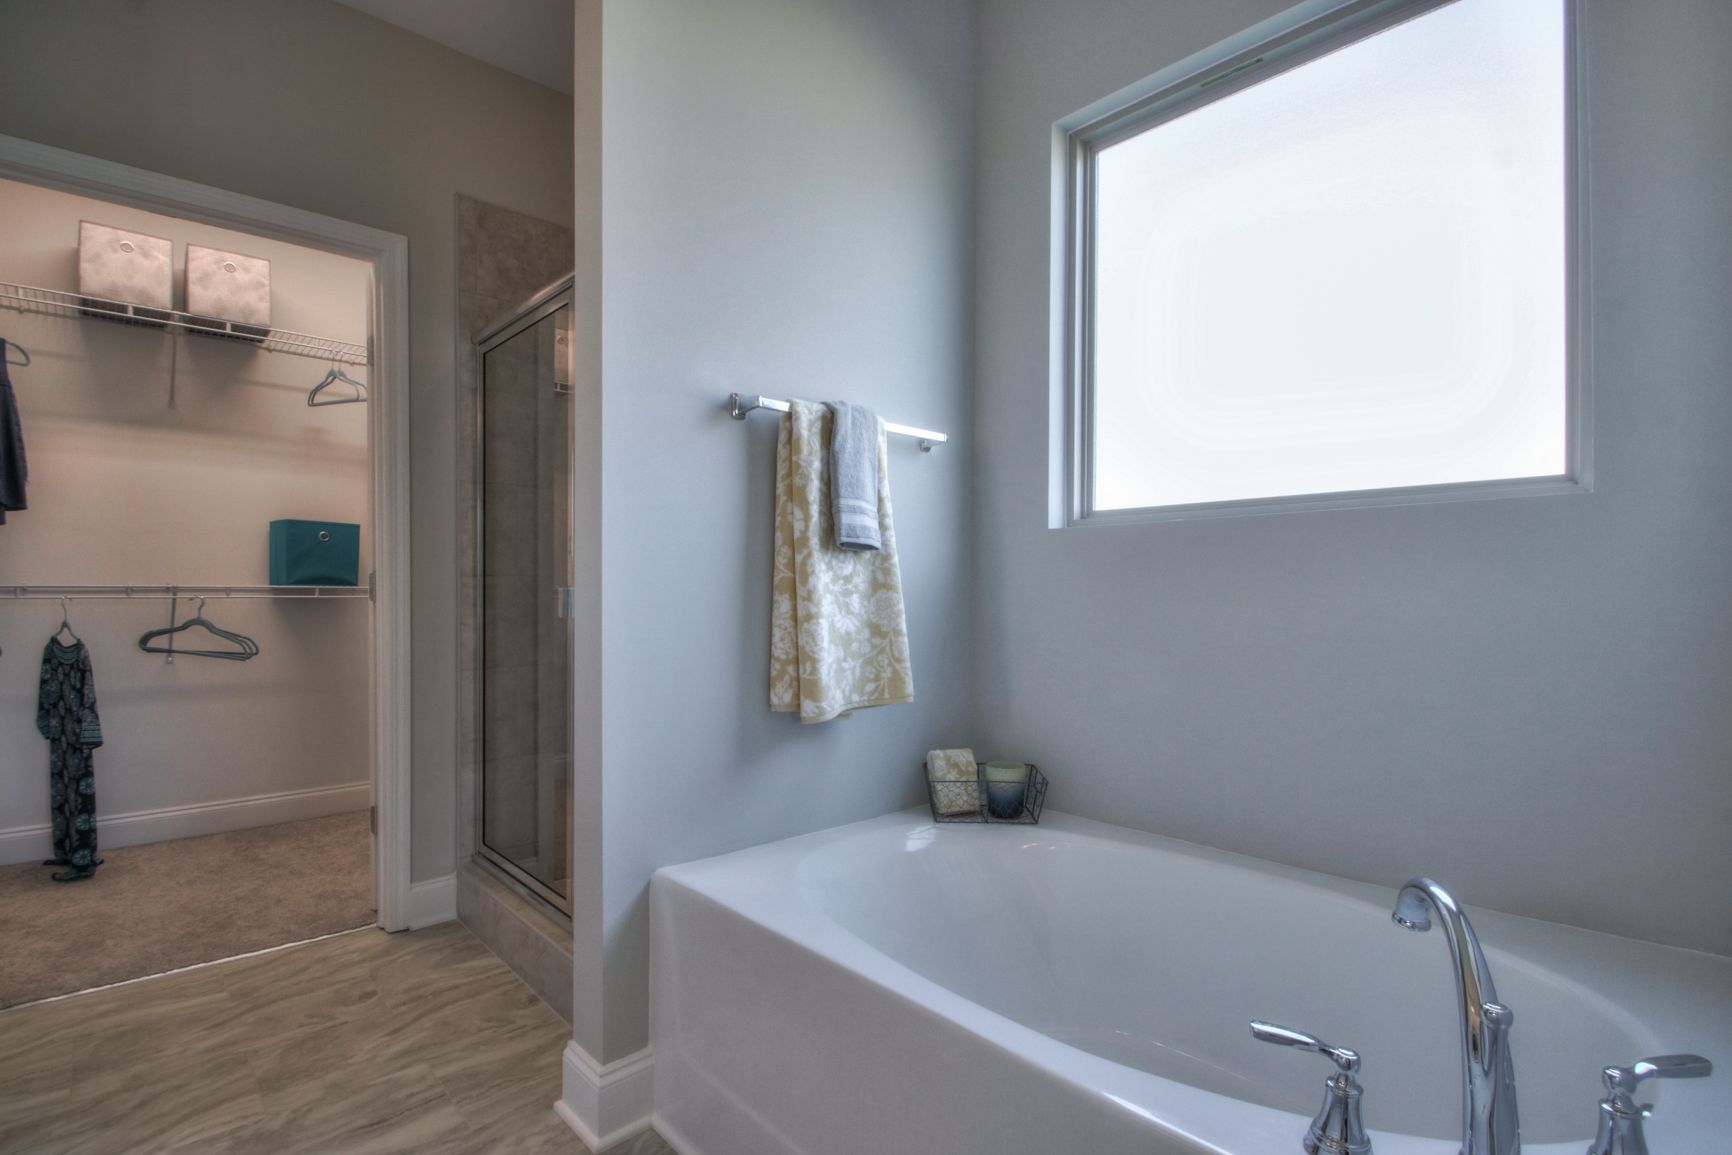 Bathroom featured in The Harding By Goodall Homes in Knoxville, TN